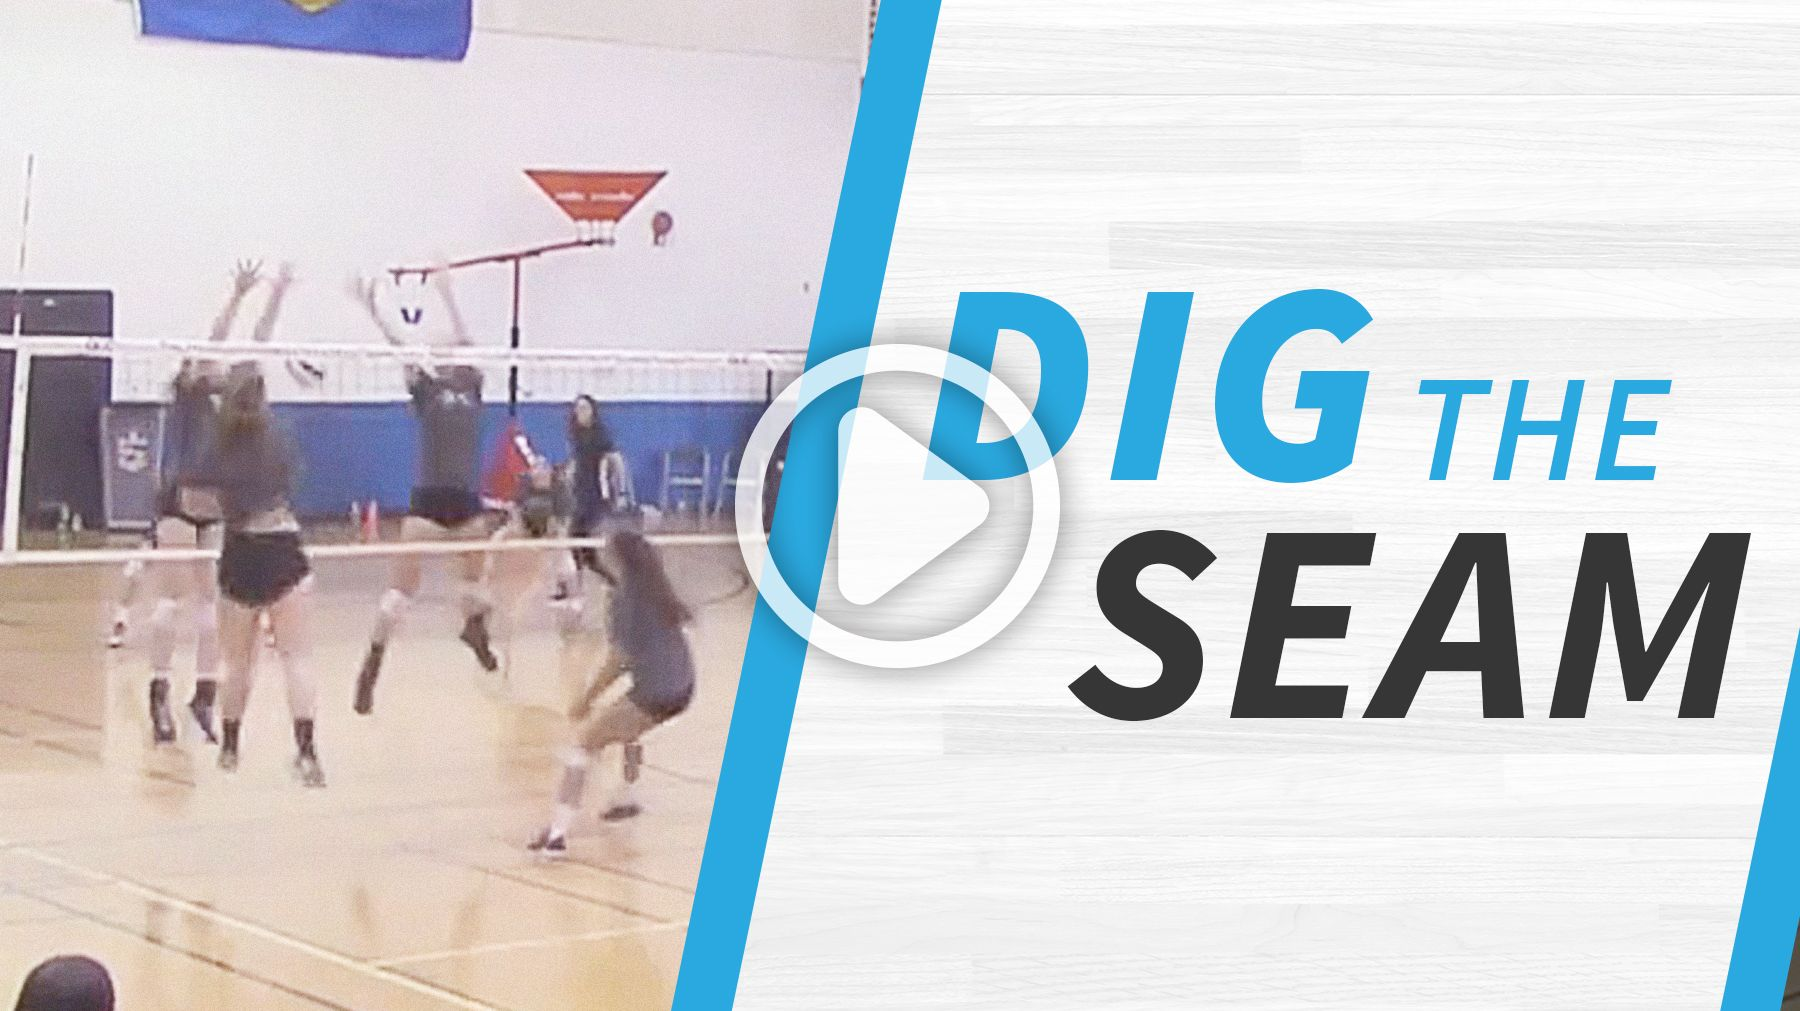 Attacking Vs Blocking Dig The Seam Drill With Images Coaching Volleyball Volleyball Drills Drill